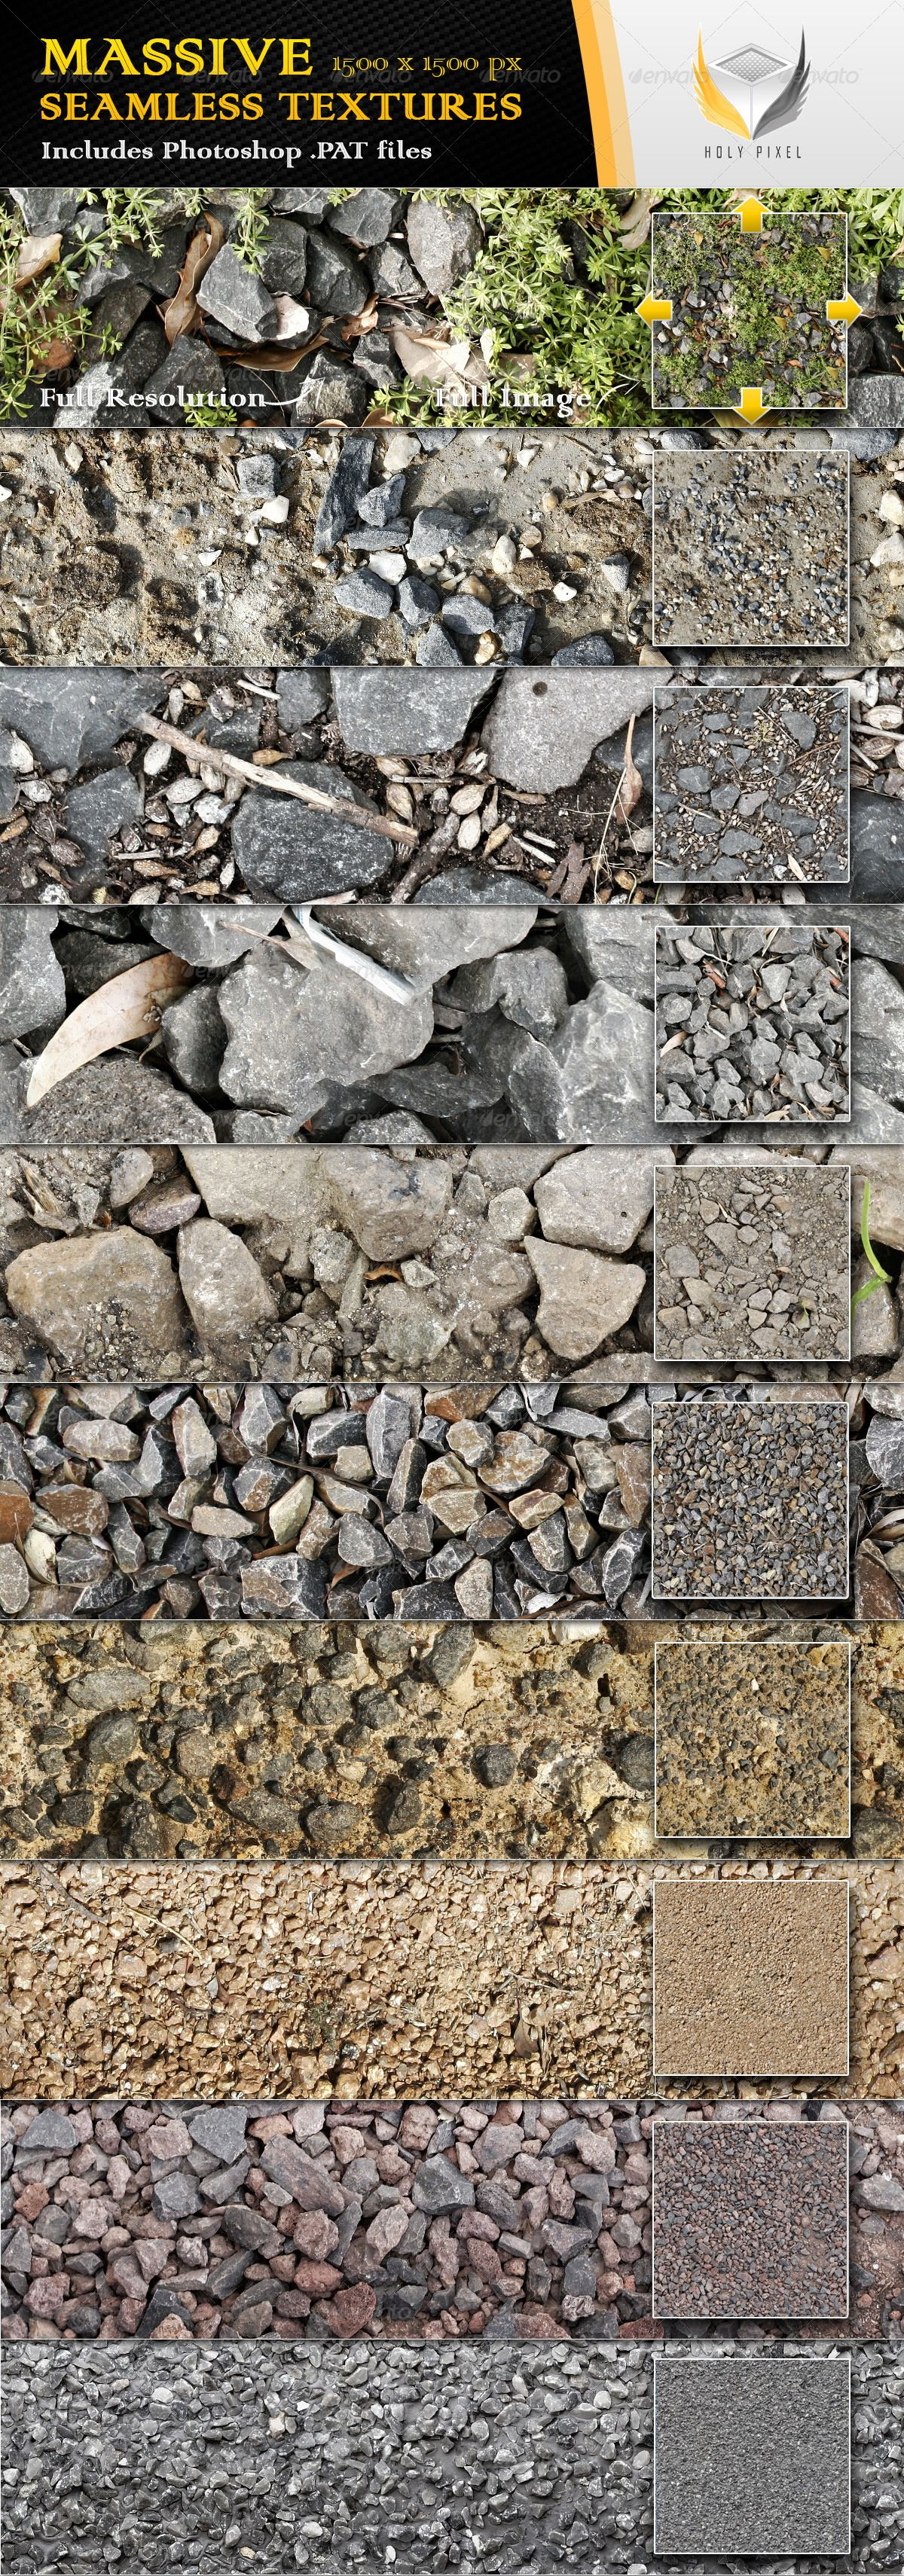 10 seamless gravel and rock textures rock patterns and photoshop 10 seamless gravel and rock textures miscellaneous textures fills patterns baditri Images